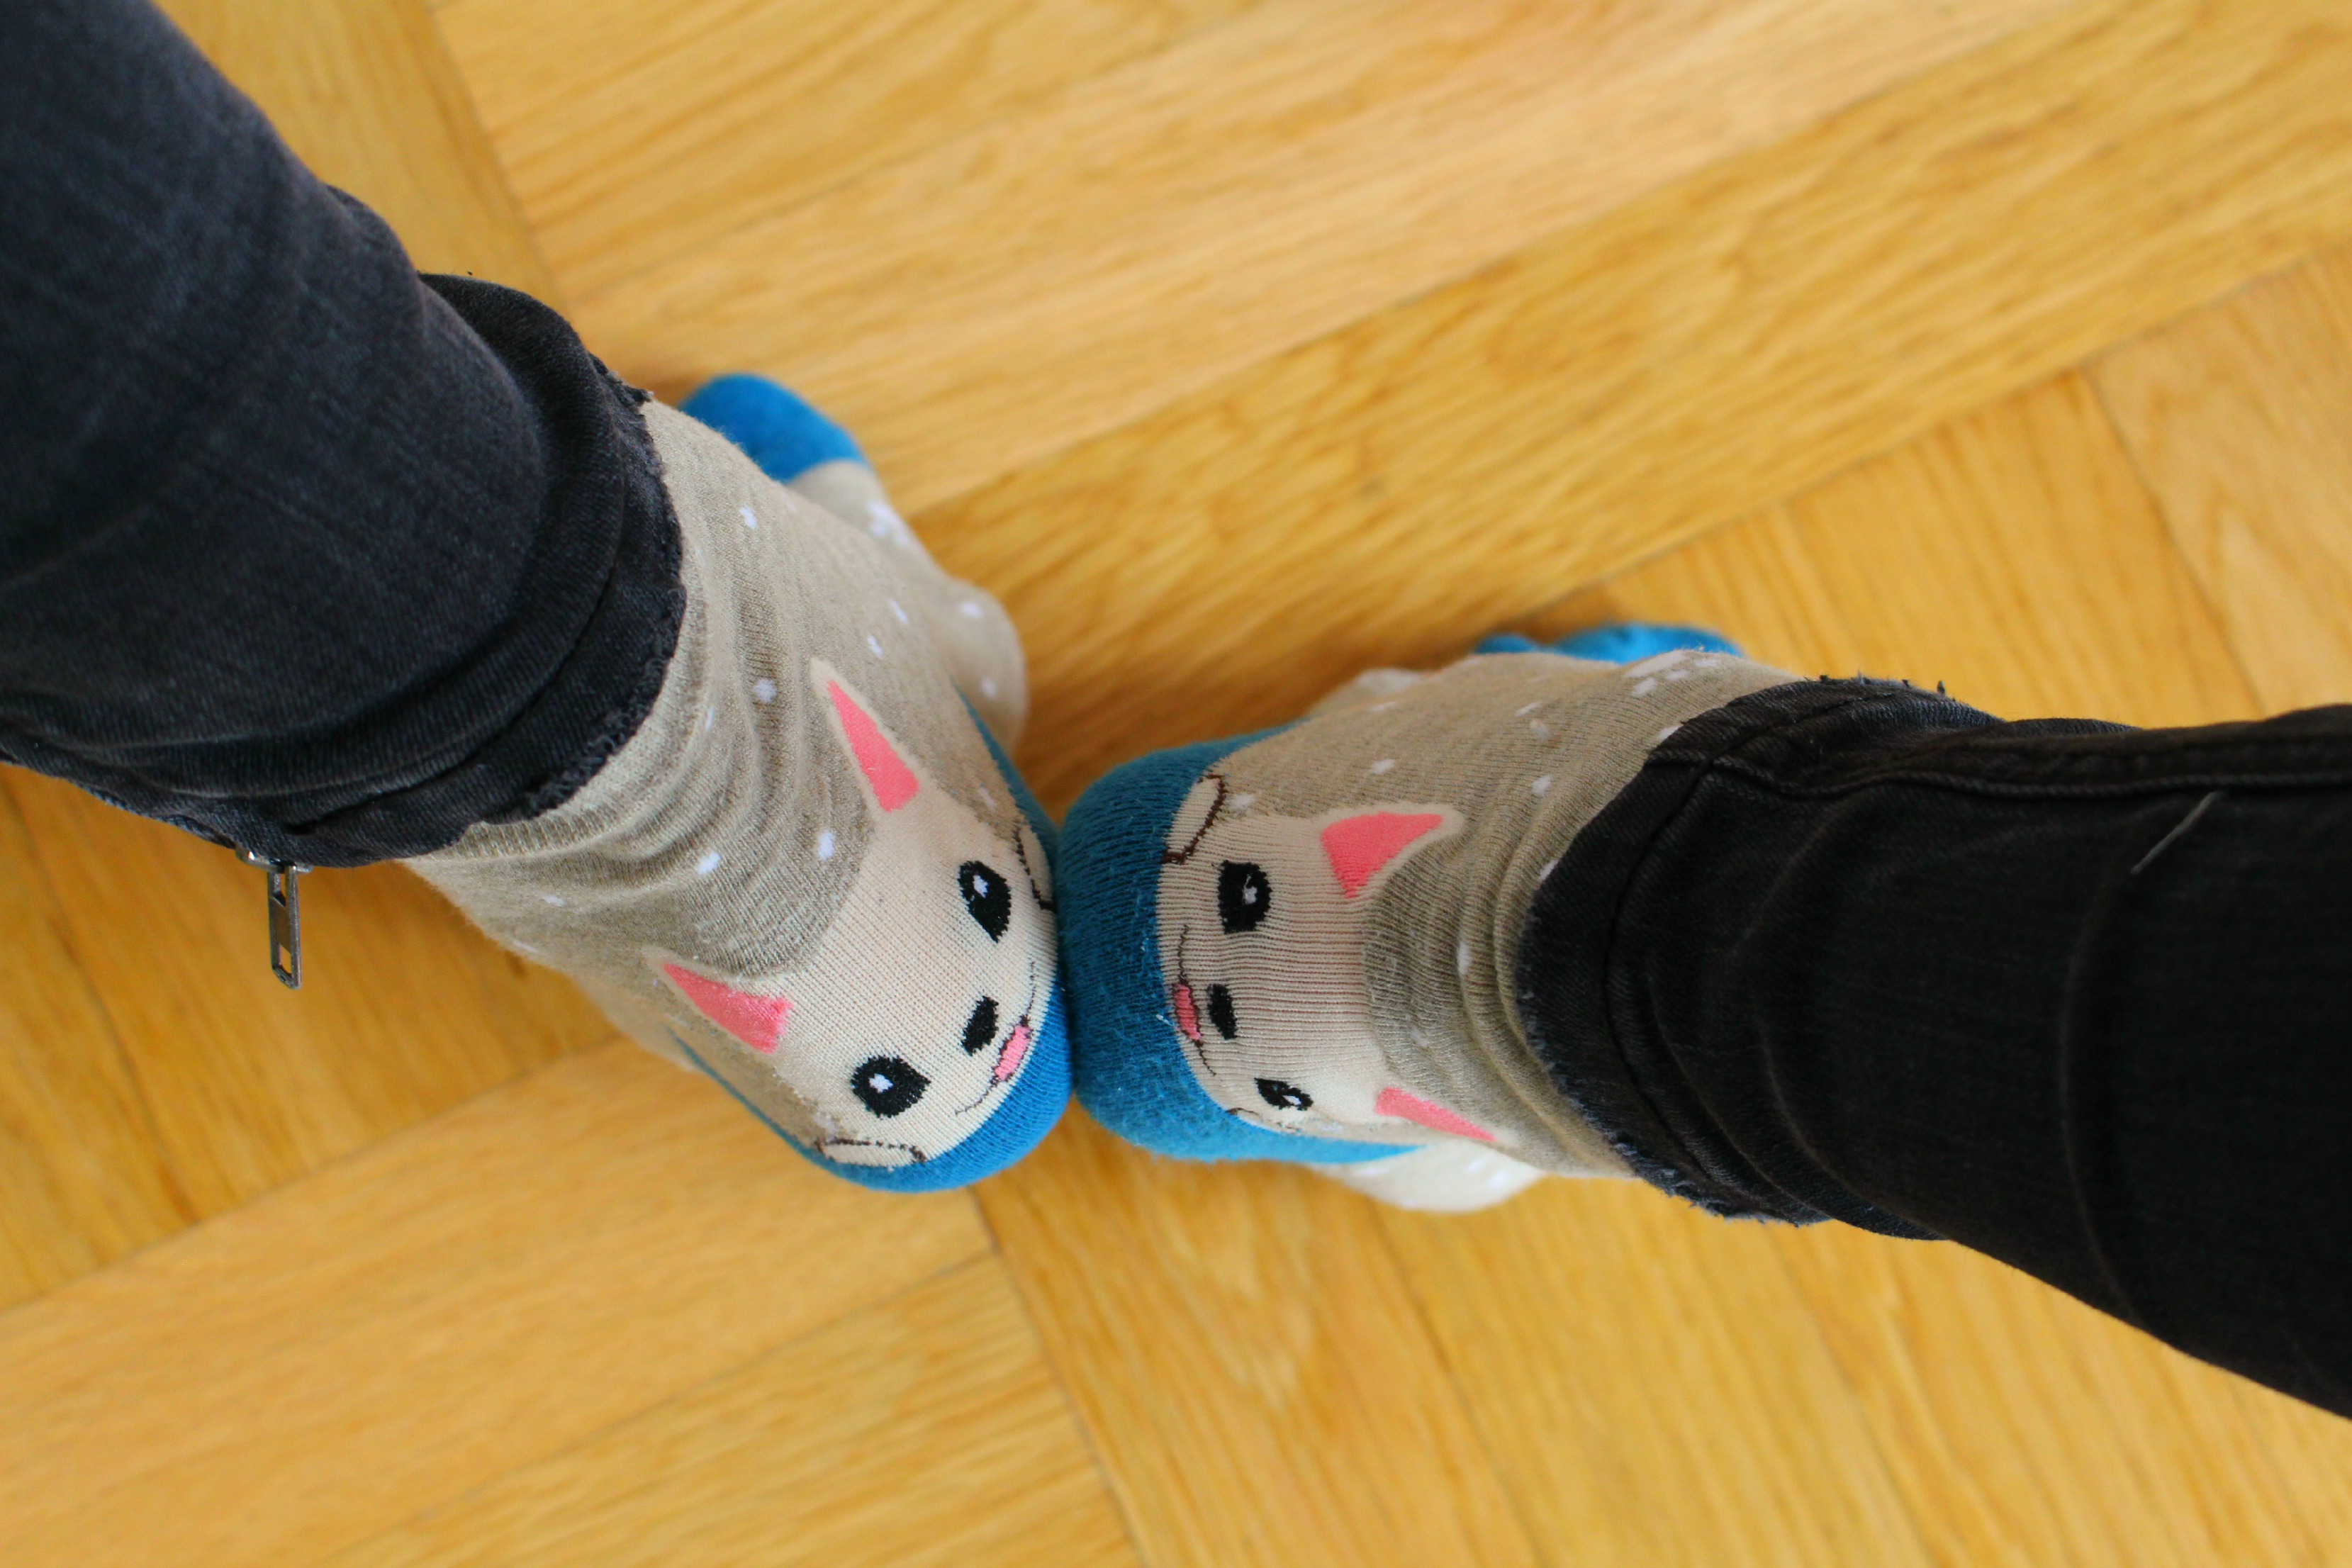 My new cute blue doggy socks :)